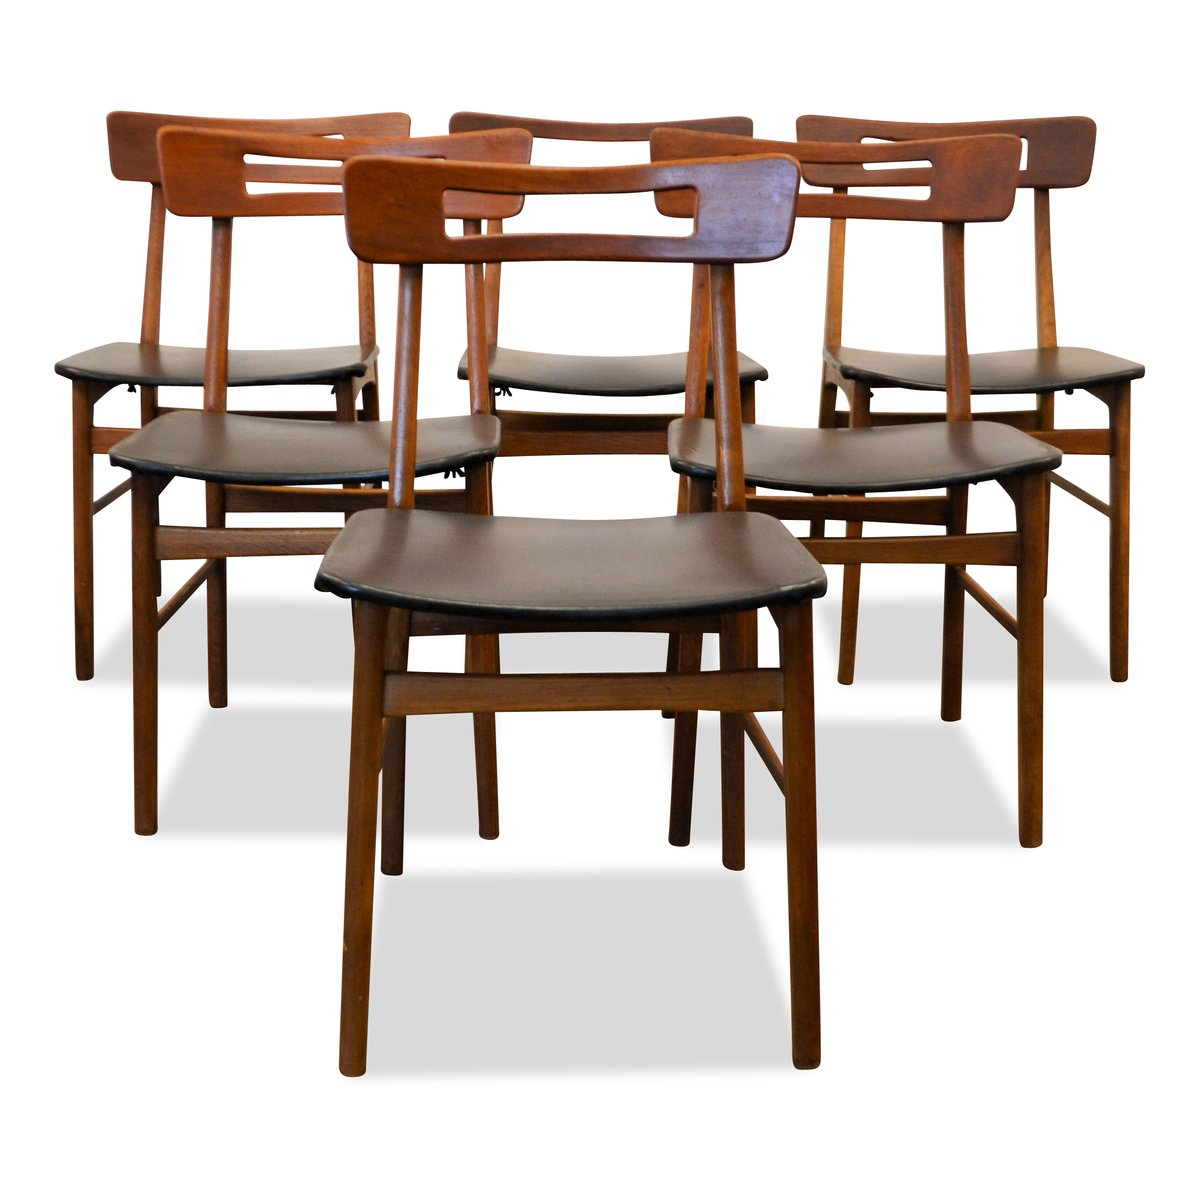 Danish Teak Dining Chairs Danish Teak Dining Chairs 1950s Set Of 6 For Sale At Pamono